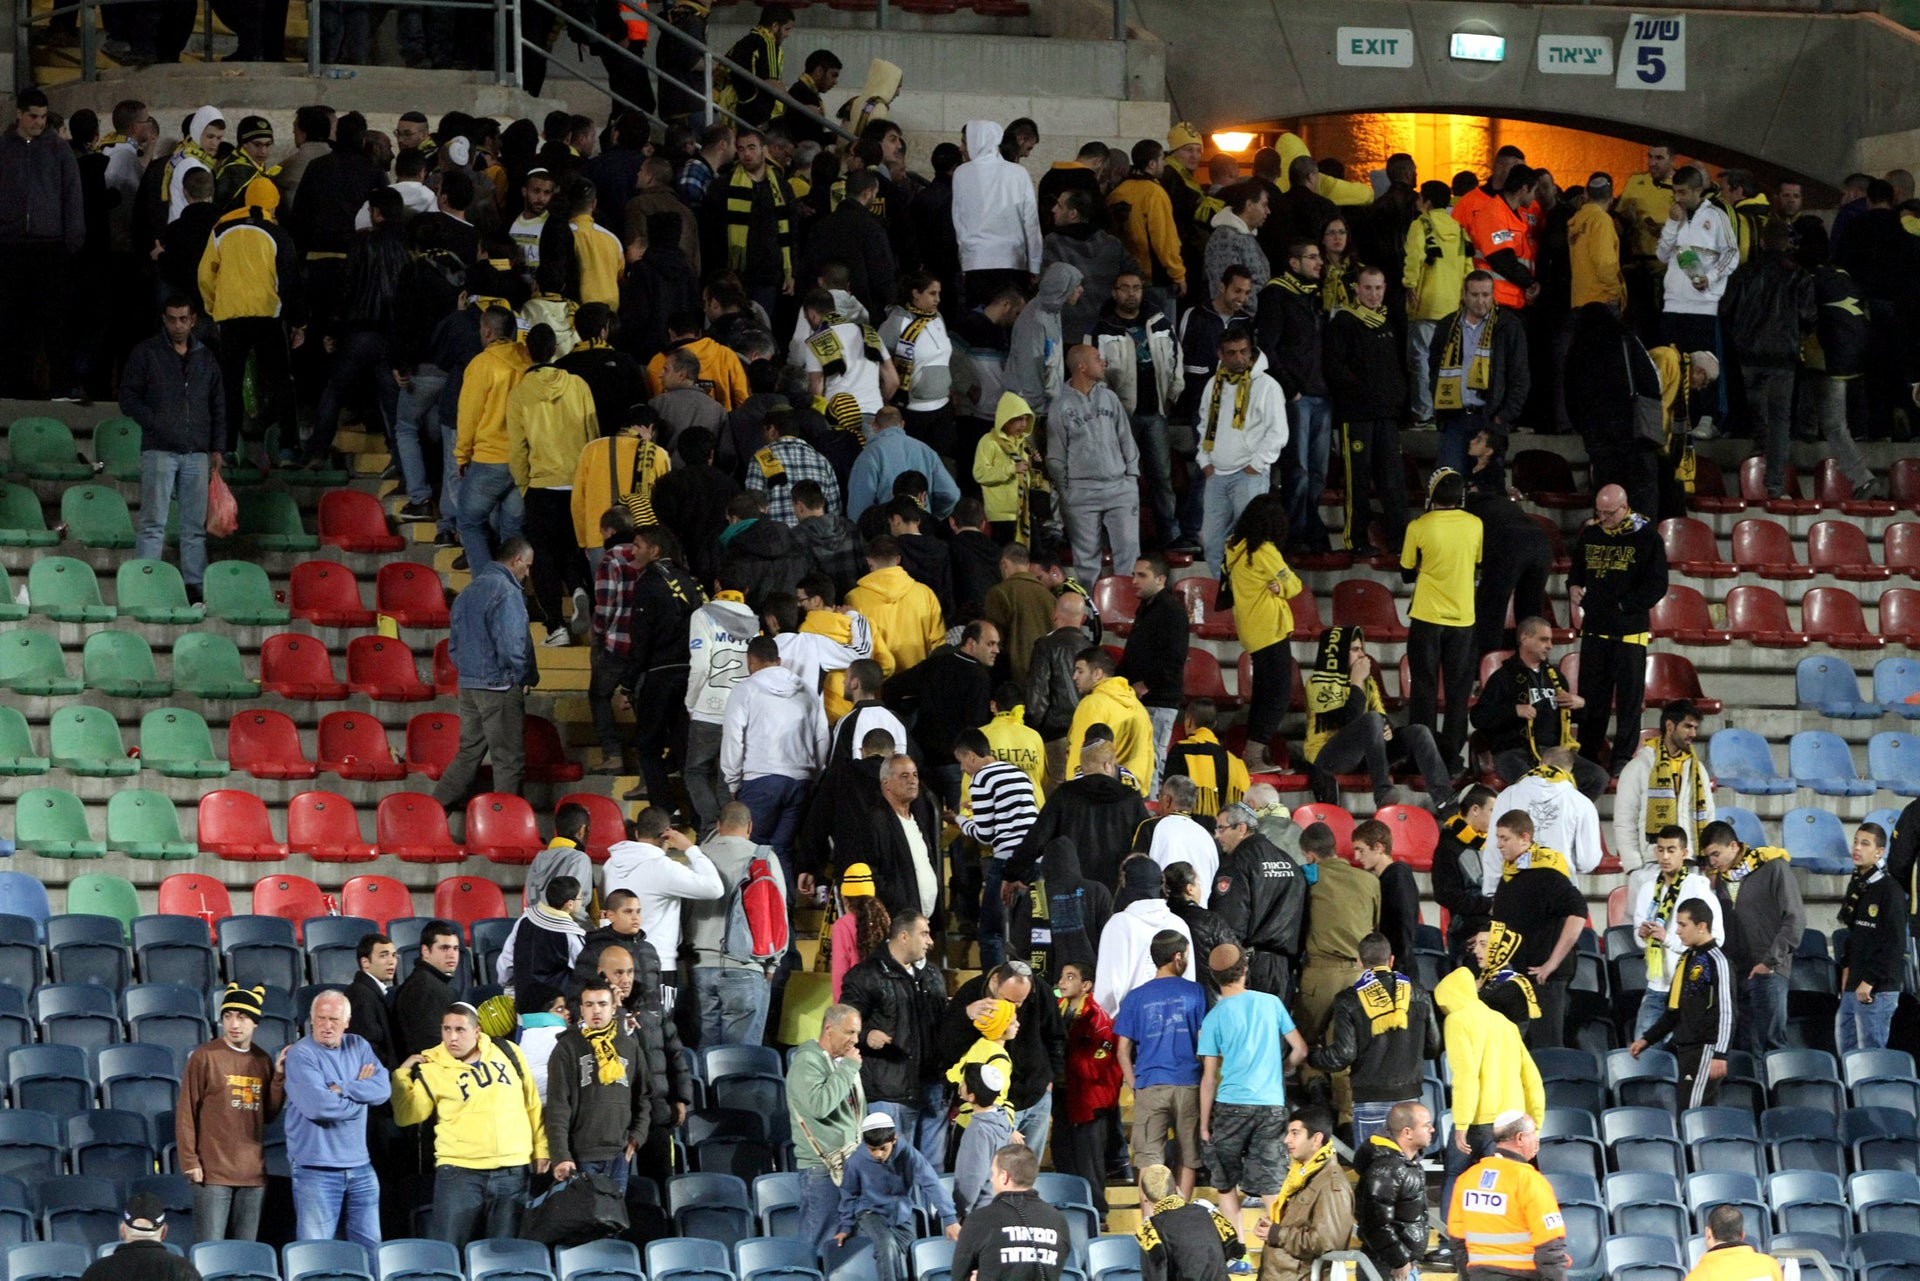 Beitar Jerusalem soccer fans leaving Teddy Stadium after one of the team's Chechen Muslim players, Zaur Sadayev, scores a goal at a game in March, 2013.